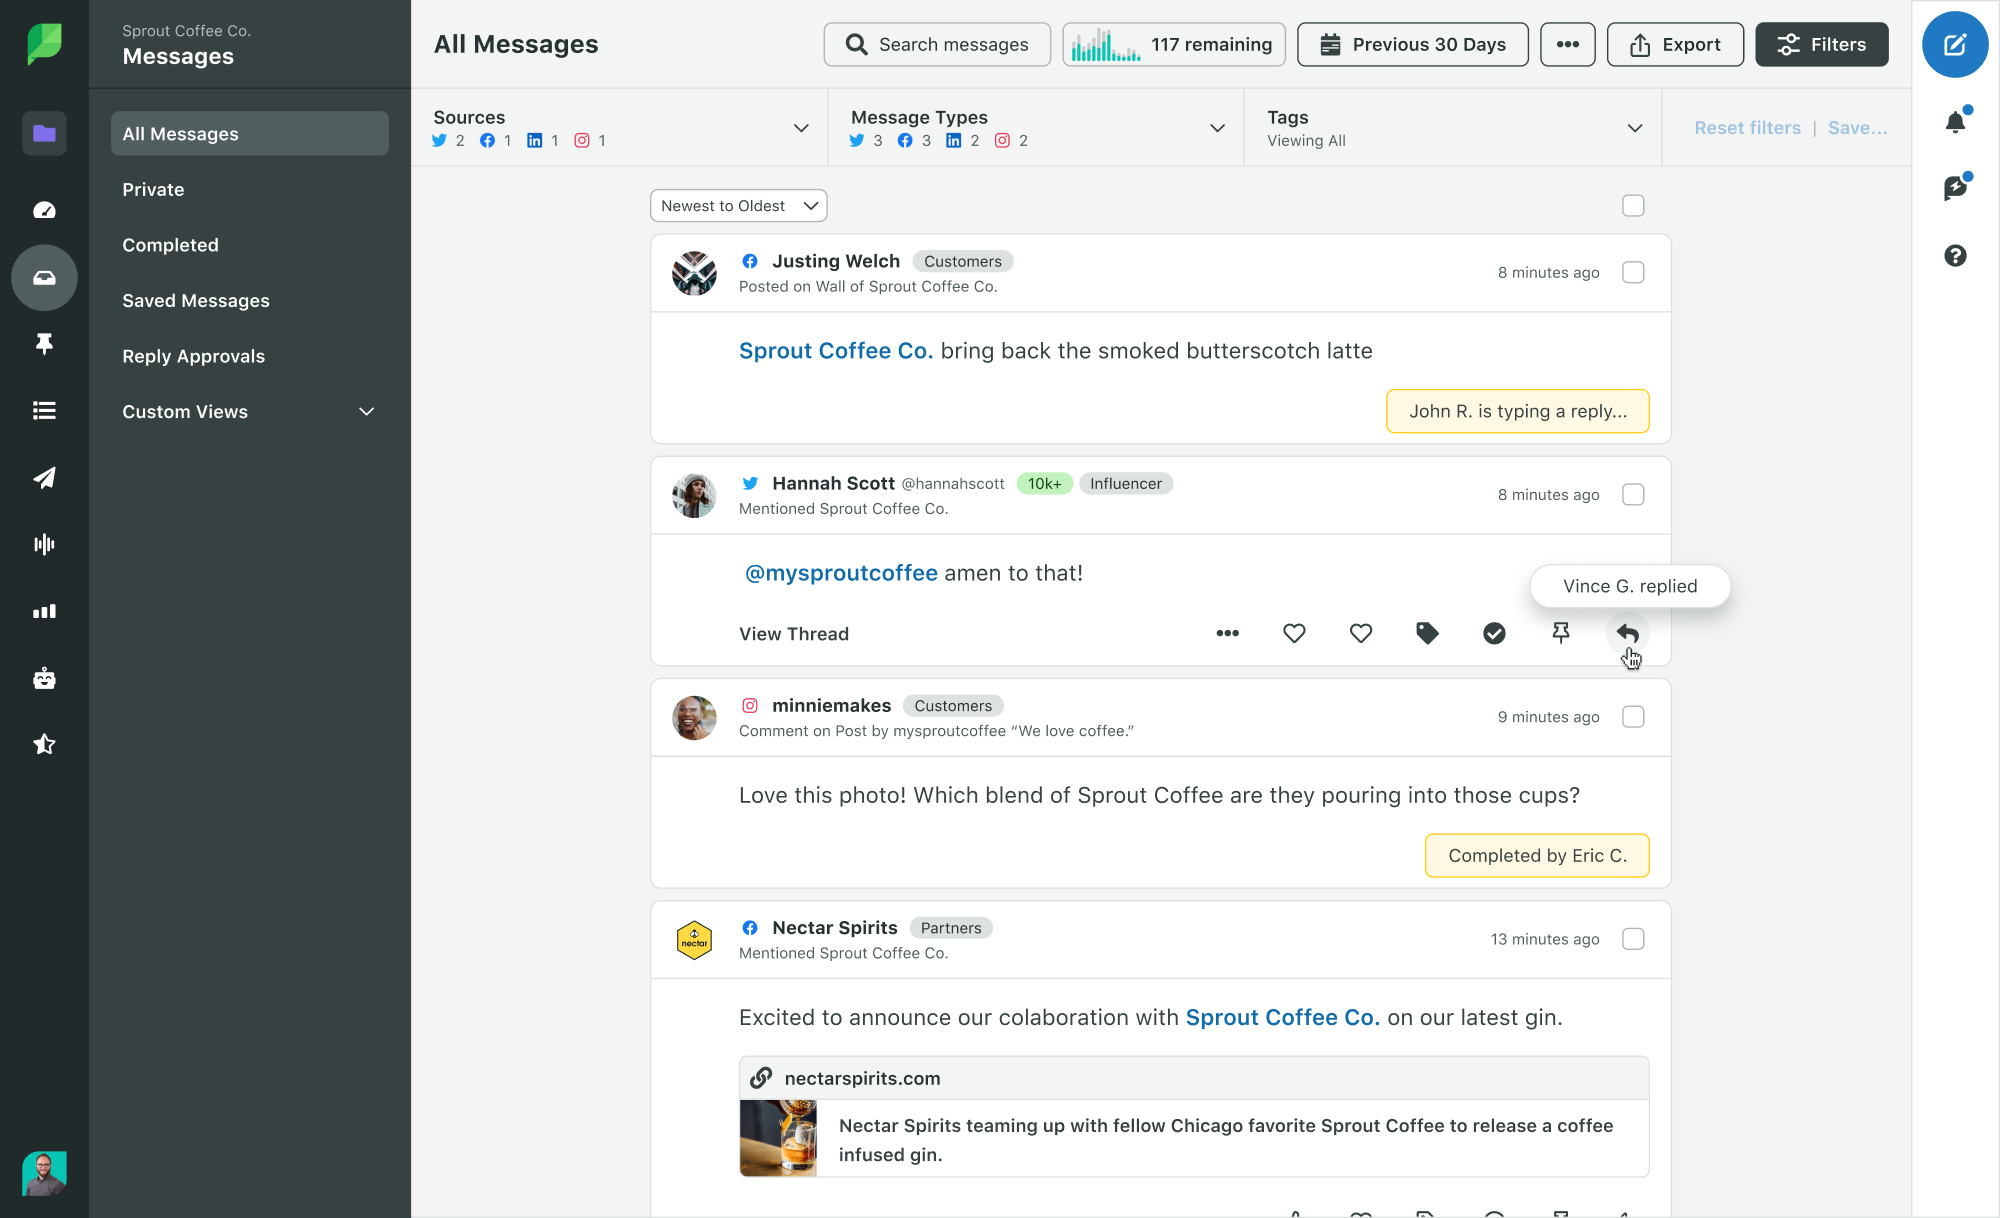 Sprout Social Smart Inbox collision detection